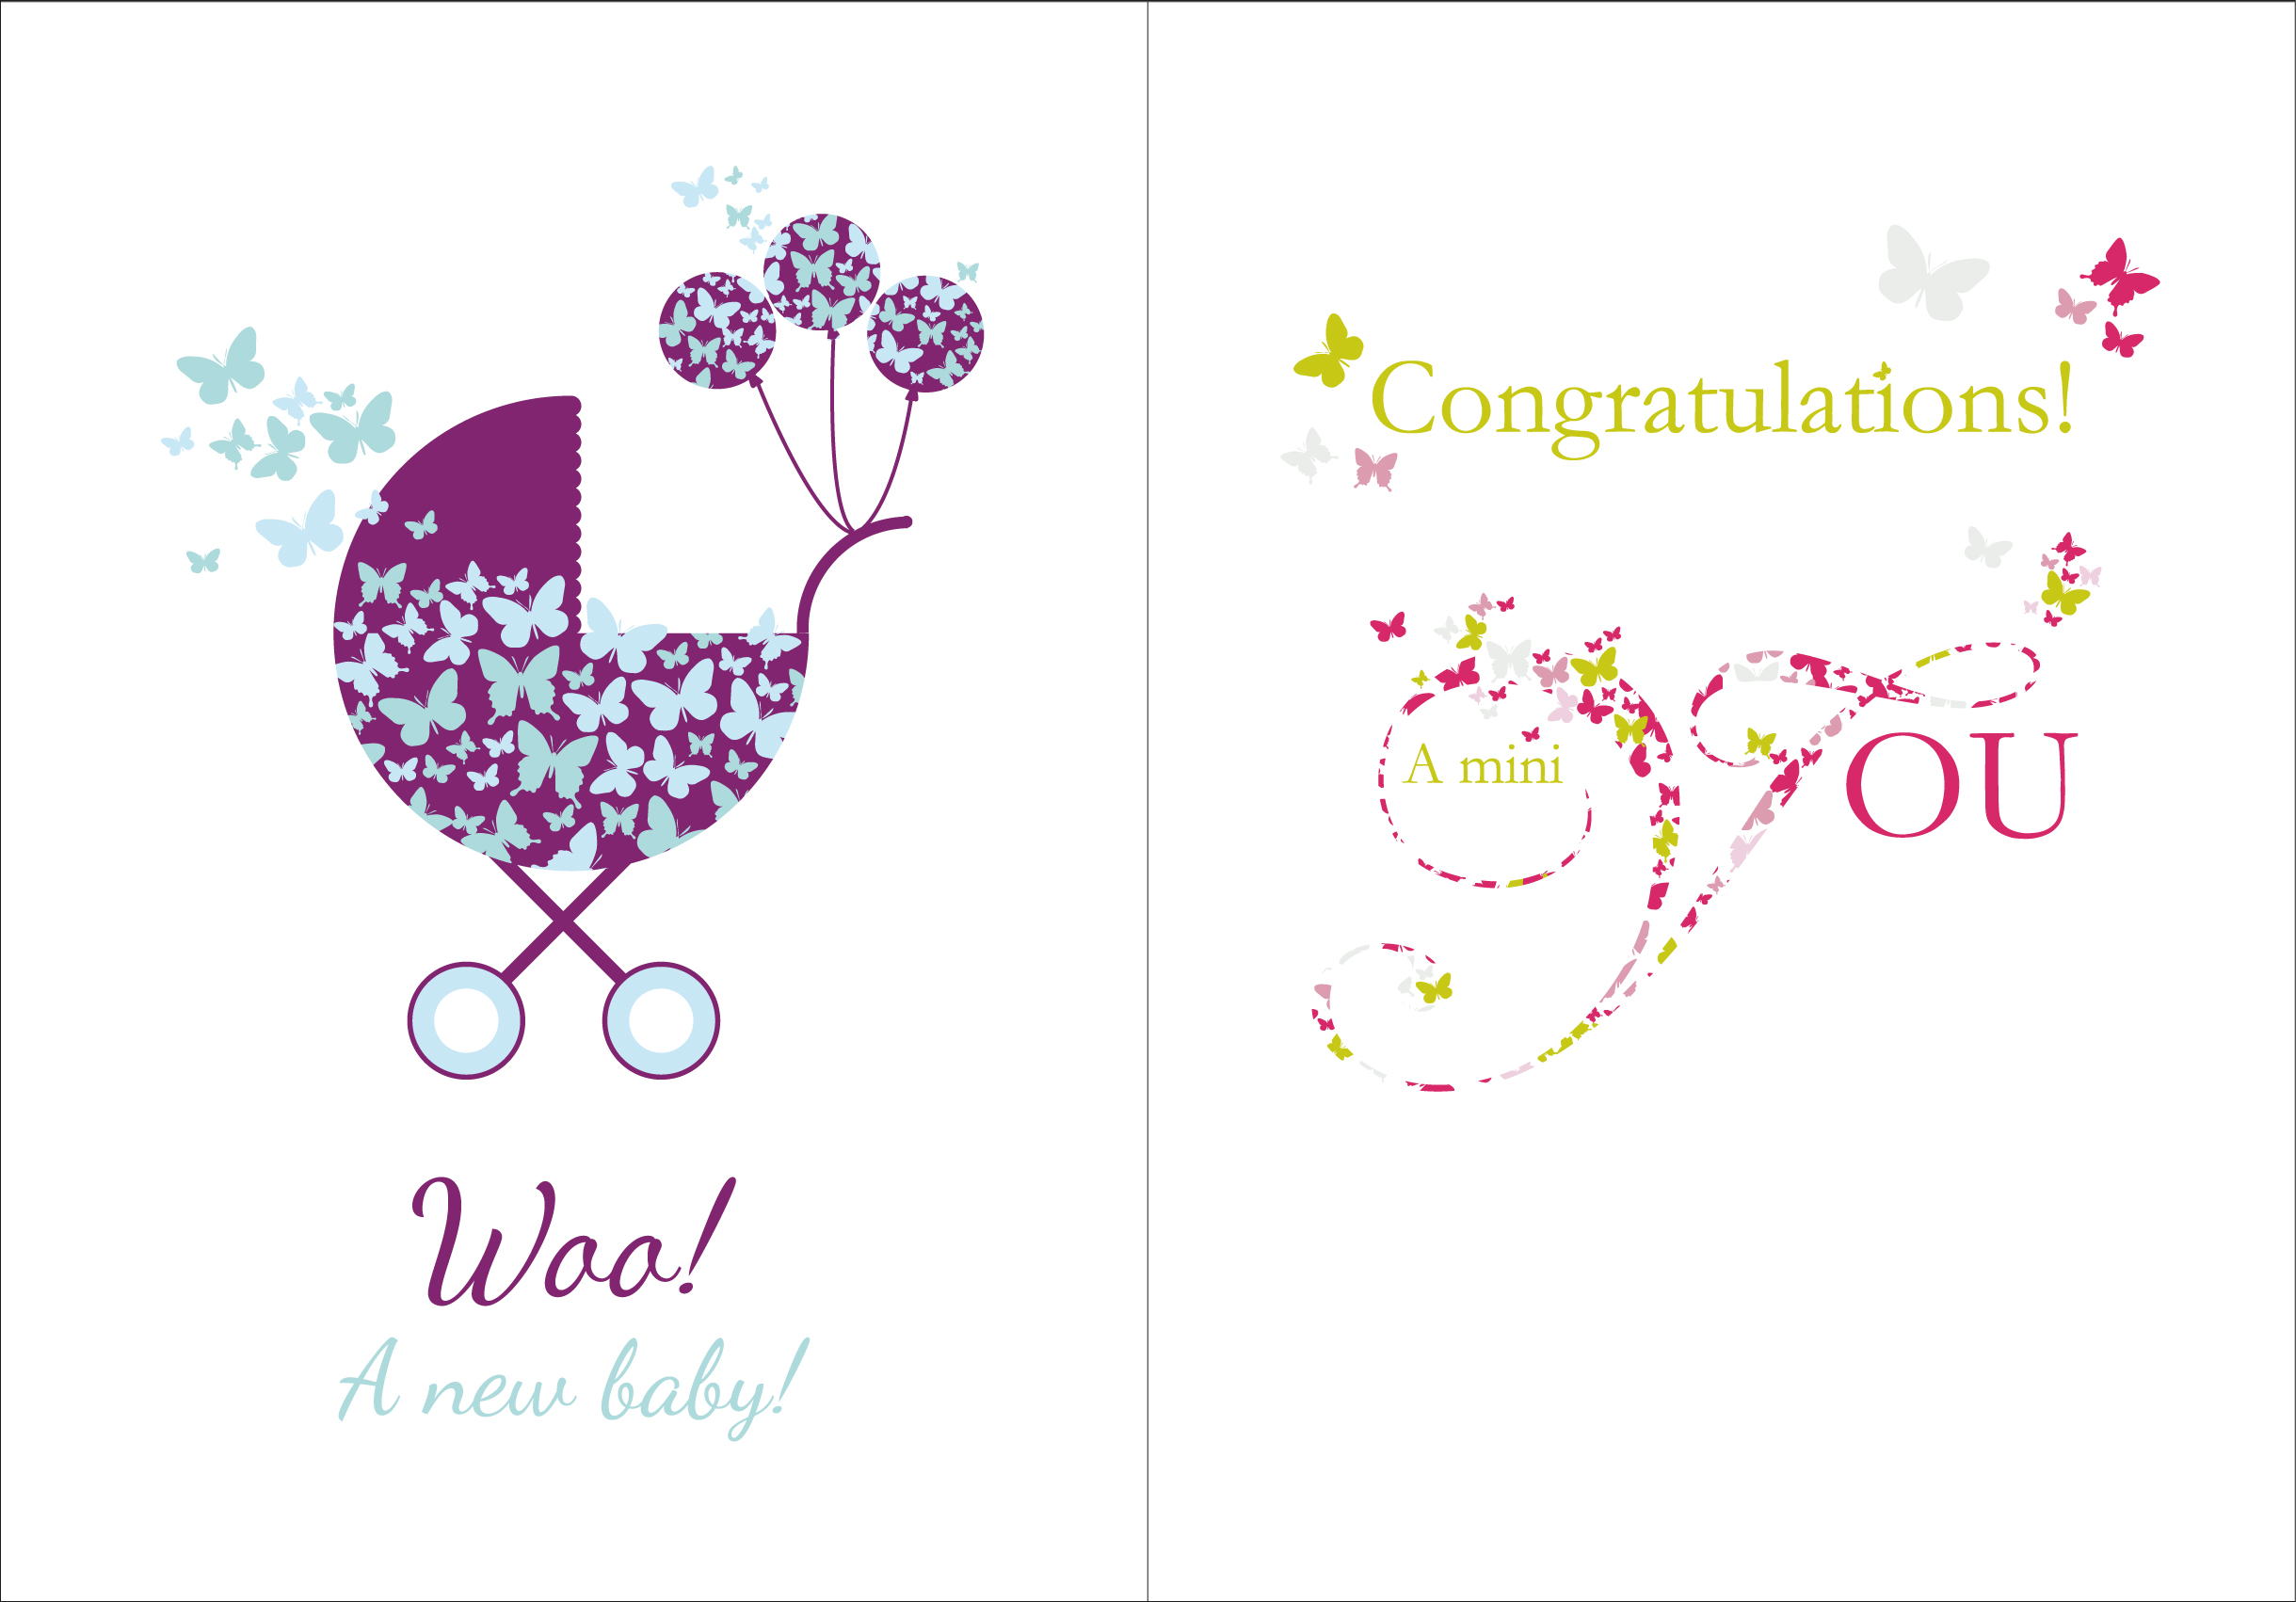 congratulations on a new baby - New Born Baby Card